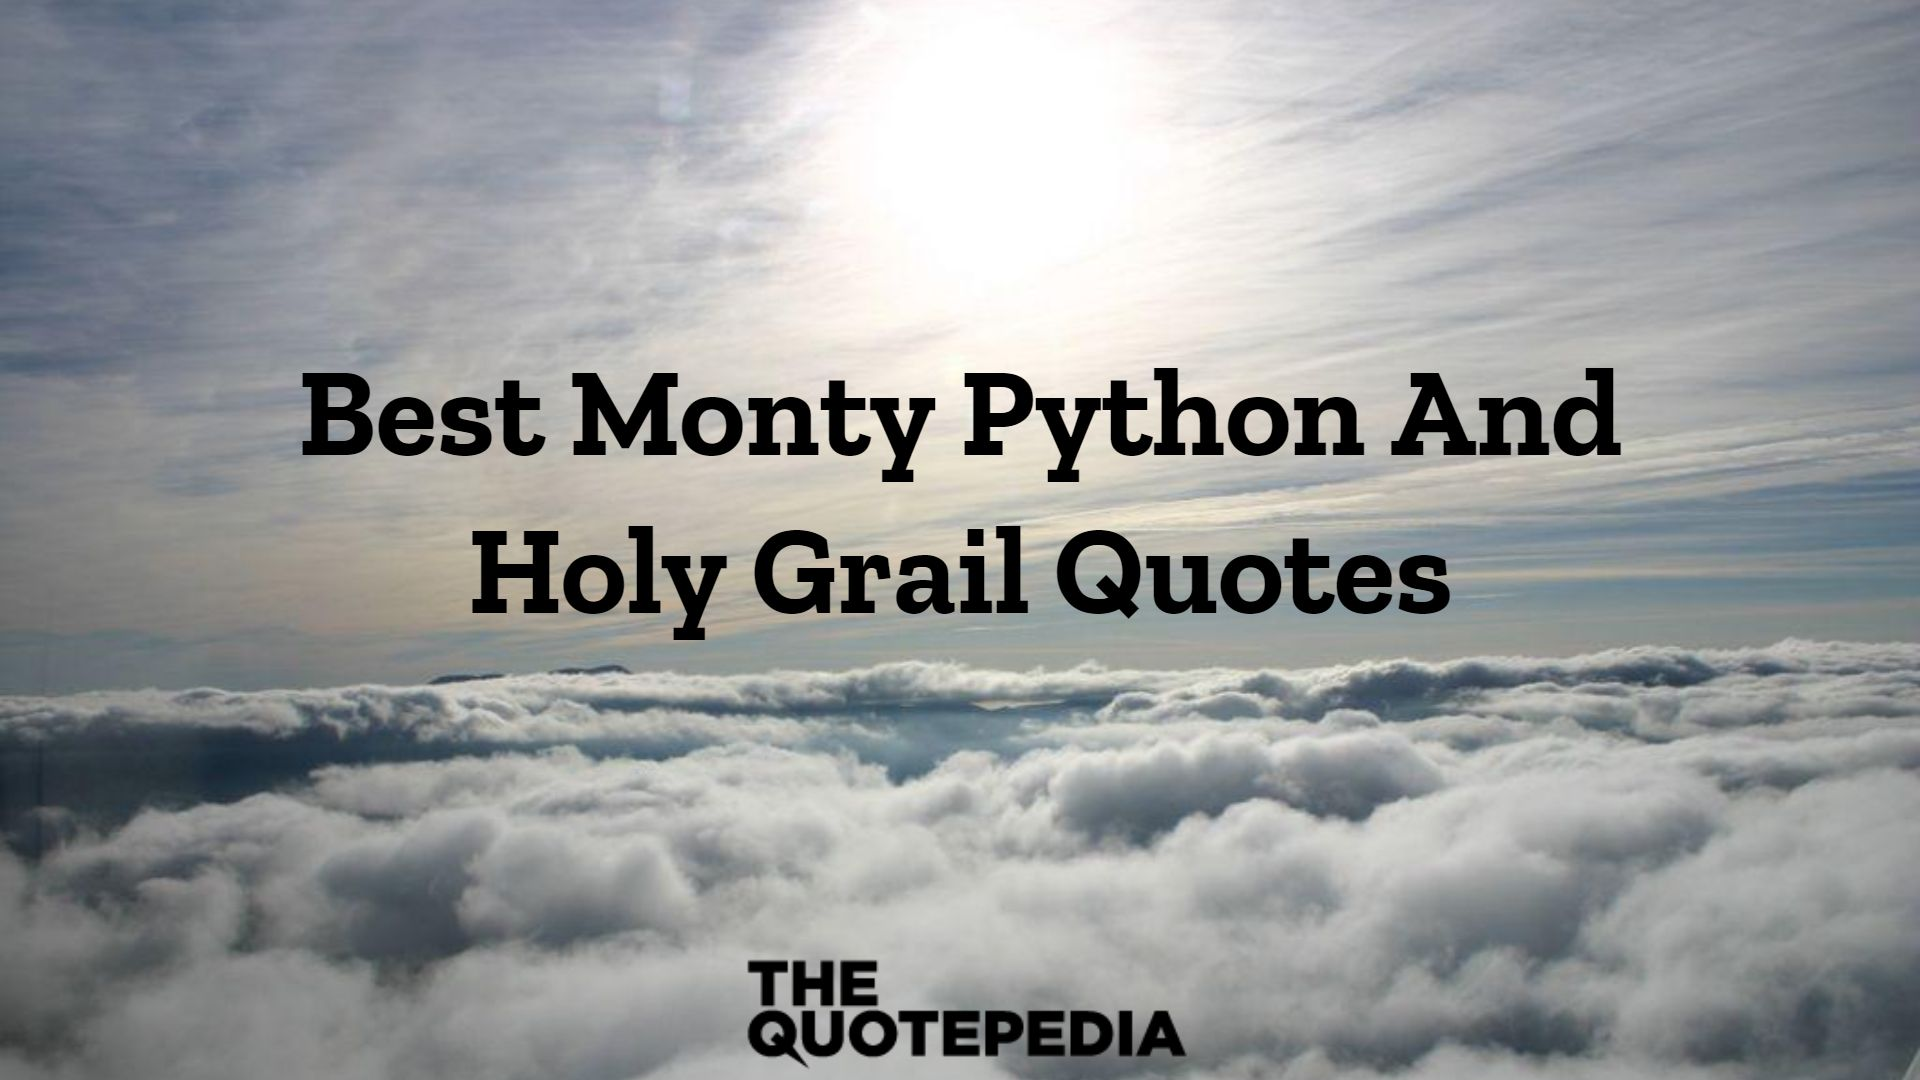 Best Monty Python And Holy Grail Quotes